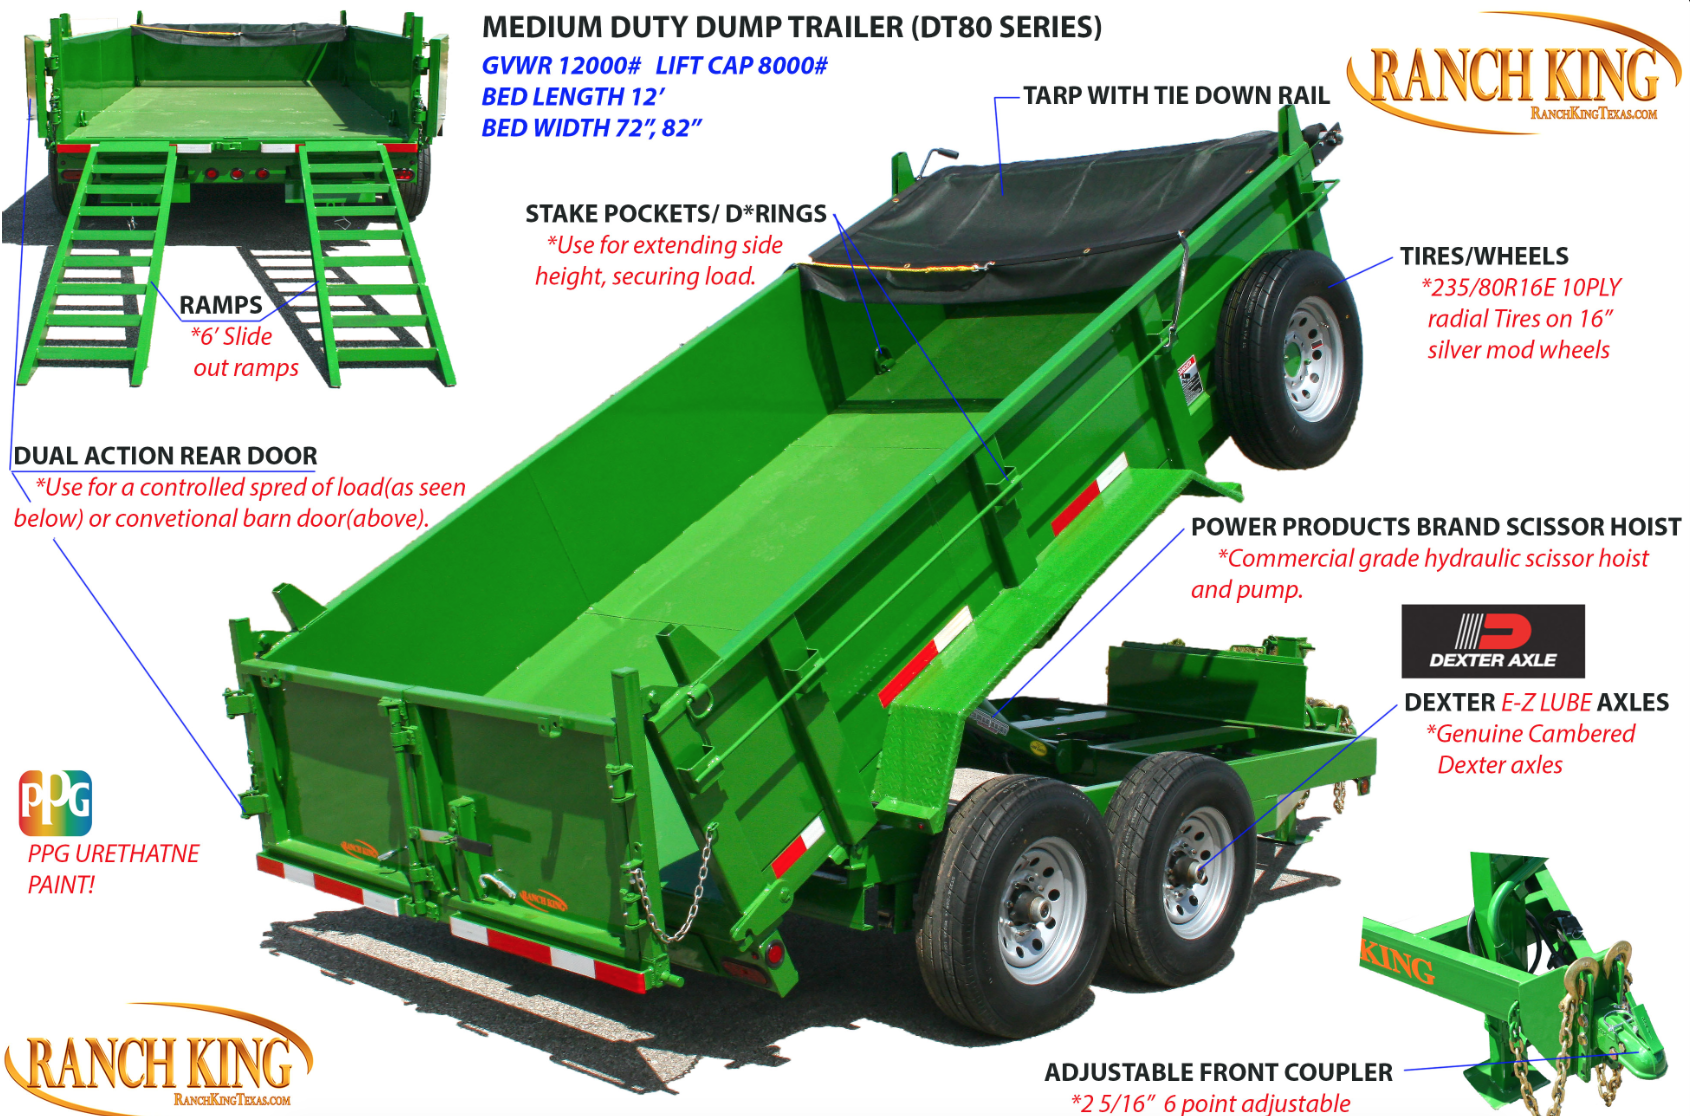 DT80 Medium Duty Dump Trailer